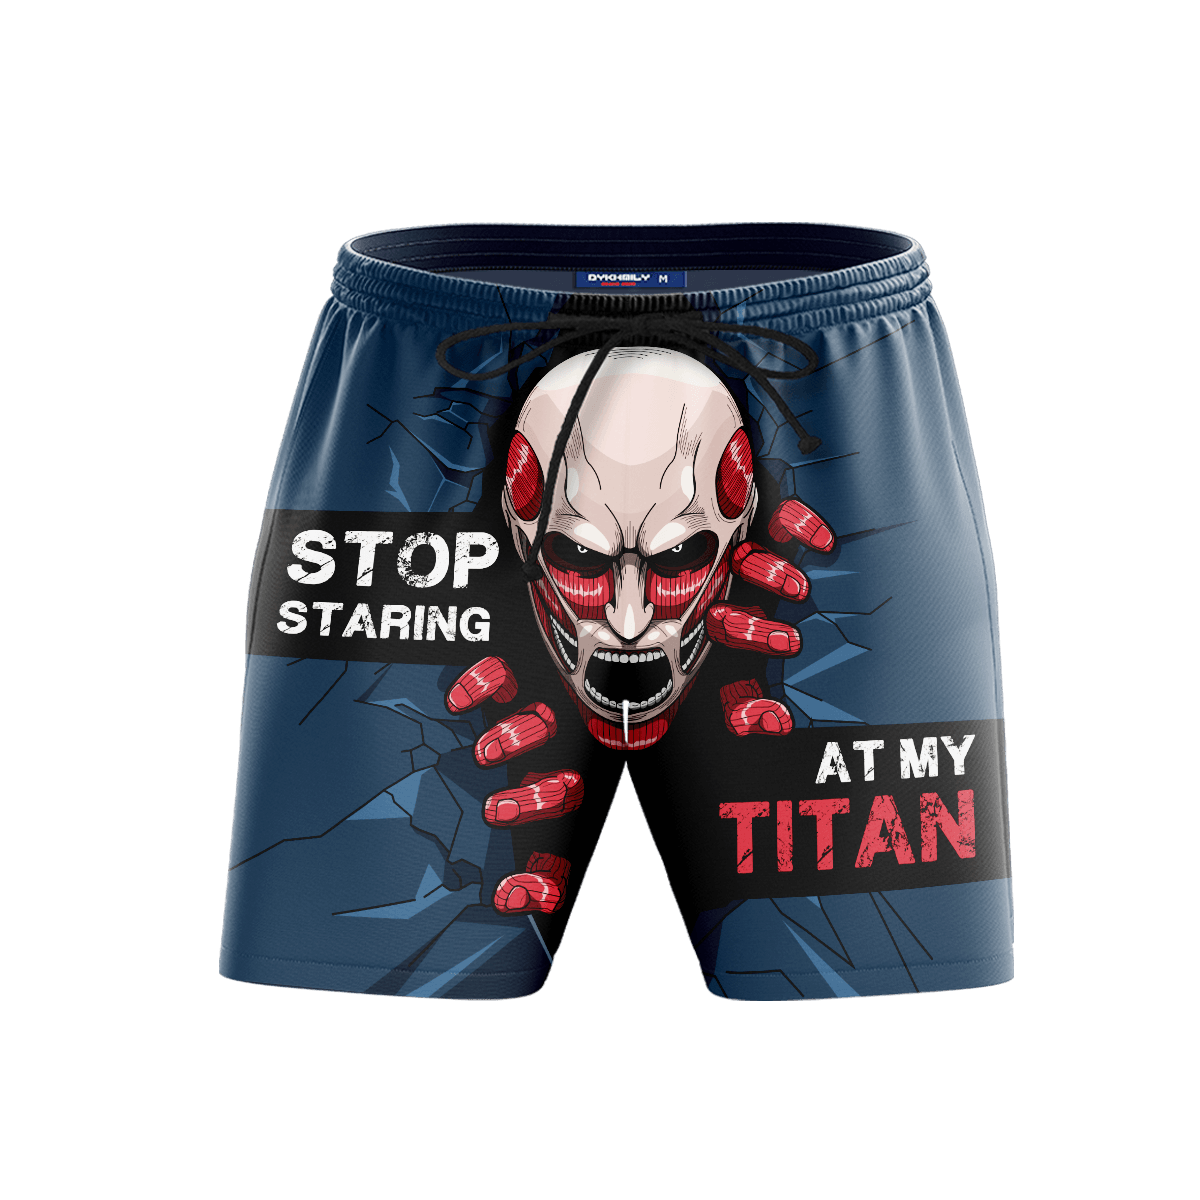 Stop Staring At My Titan Beach Shorts FDM3107 S Official Anime Swimsuit Merch